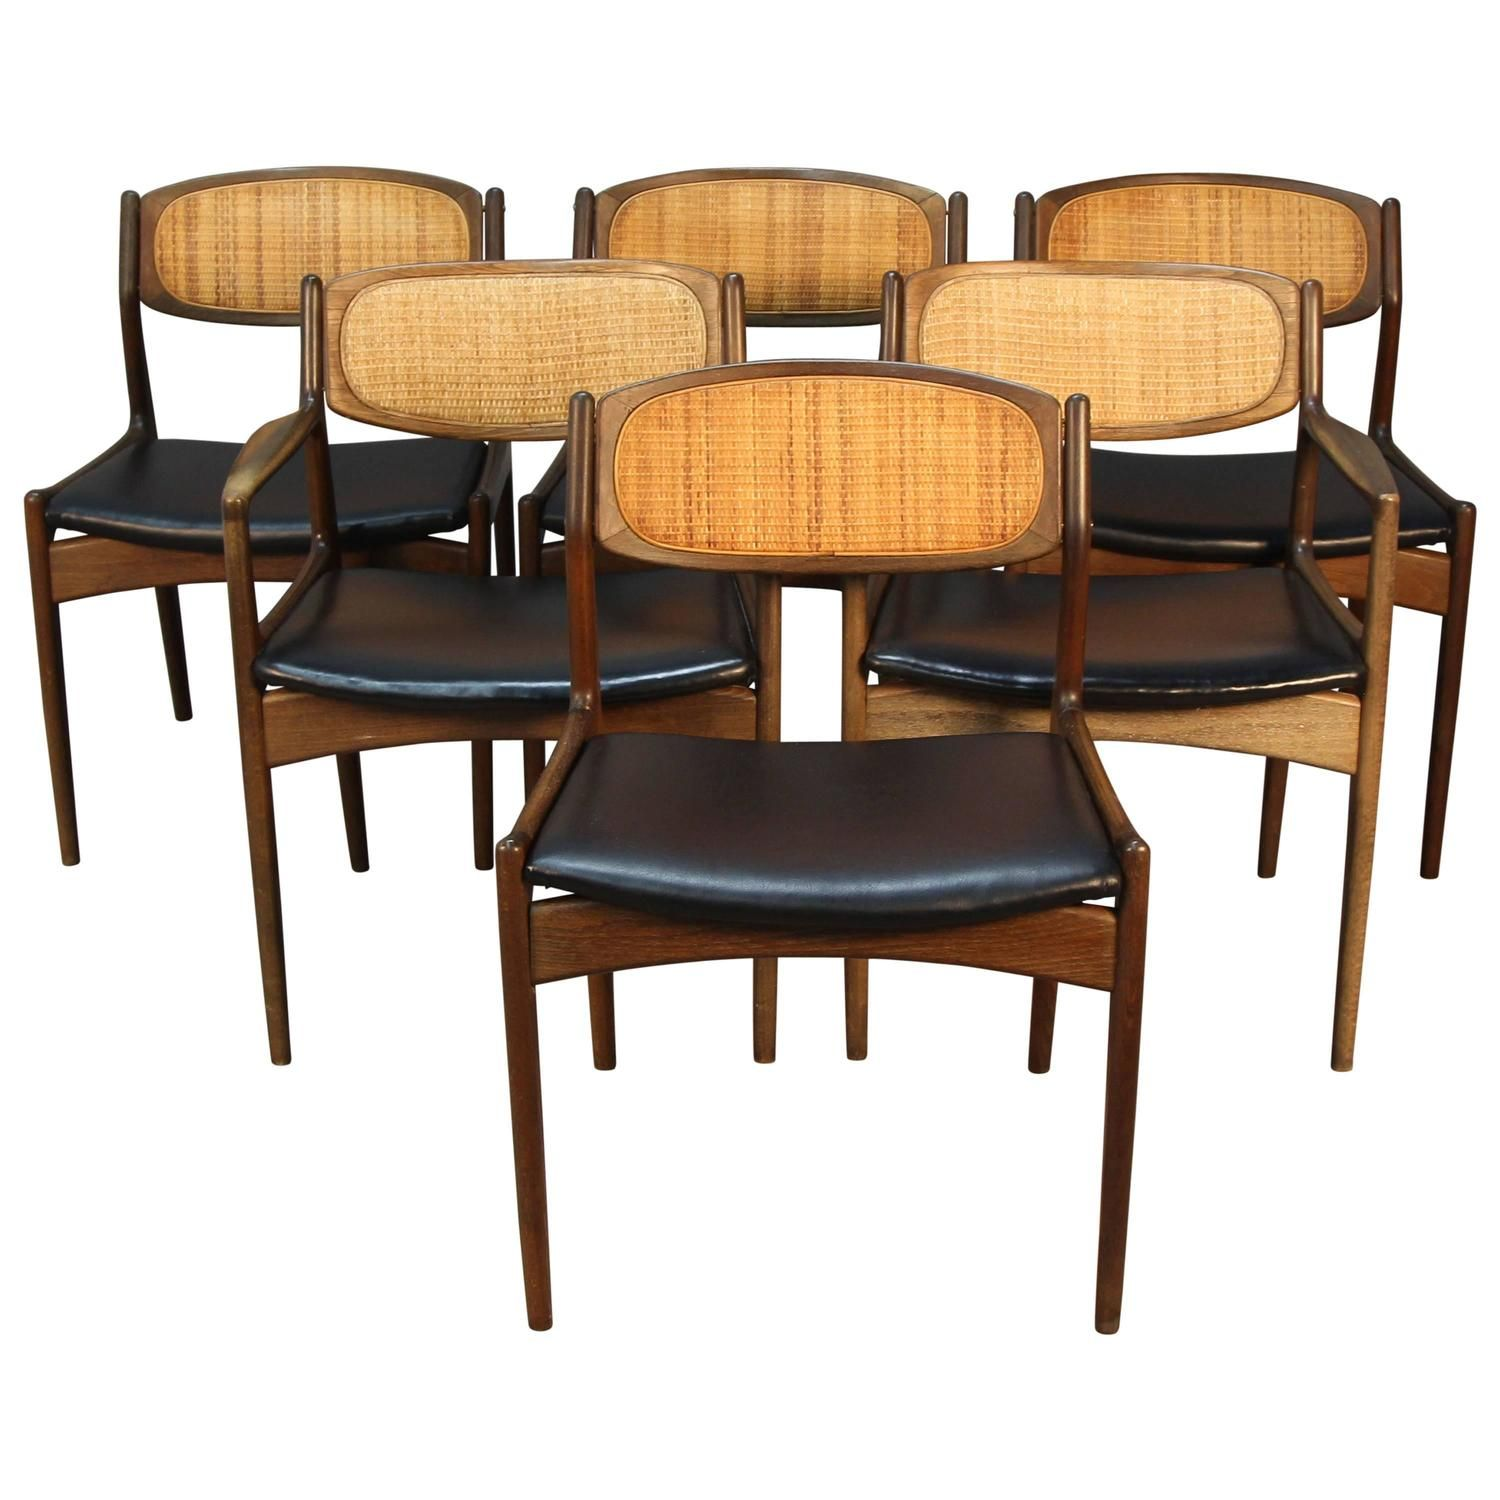 Danish modern walnut dining chairs - Danish Modern Walnut Dining Chairs 25